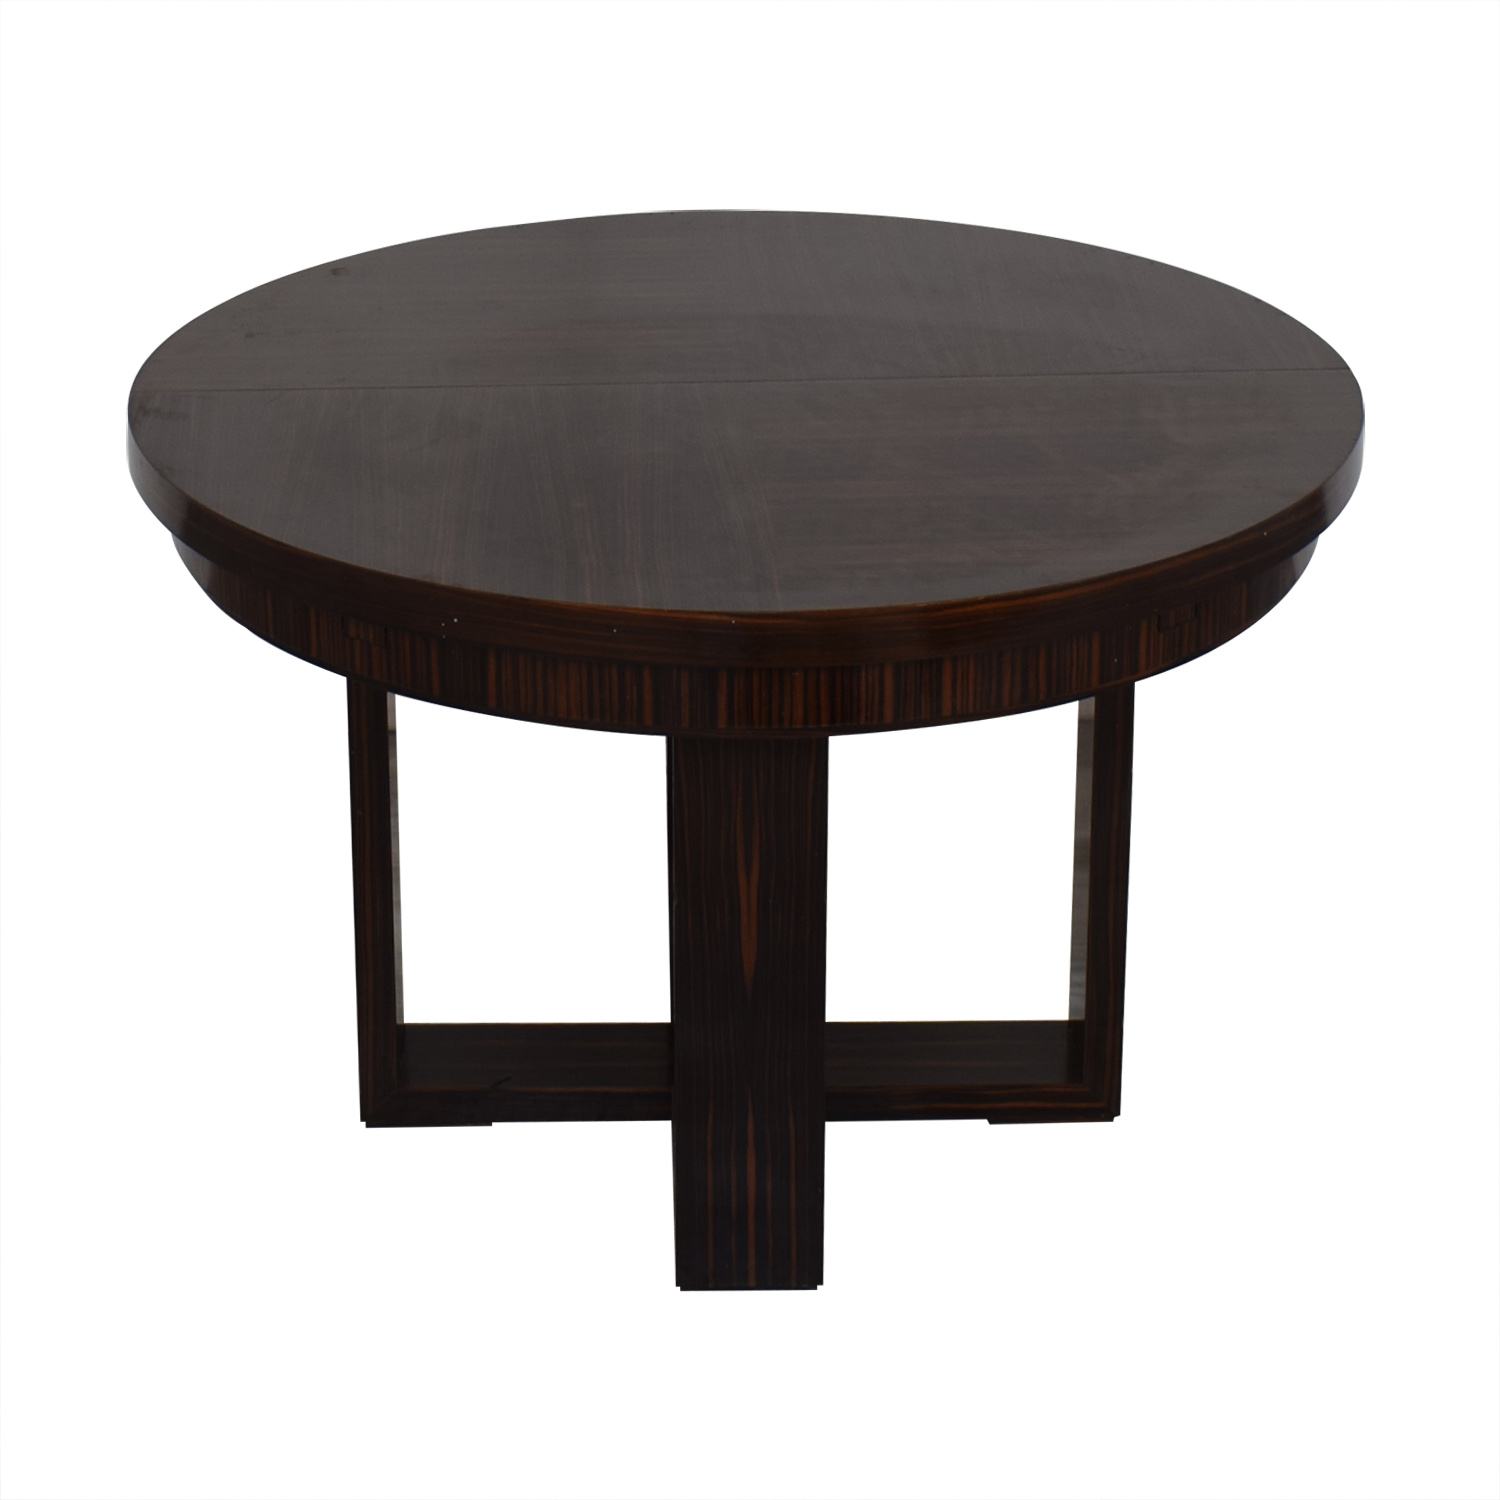 Annibale Colombo Annibale Colombo Extension Dining Table dark brown